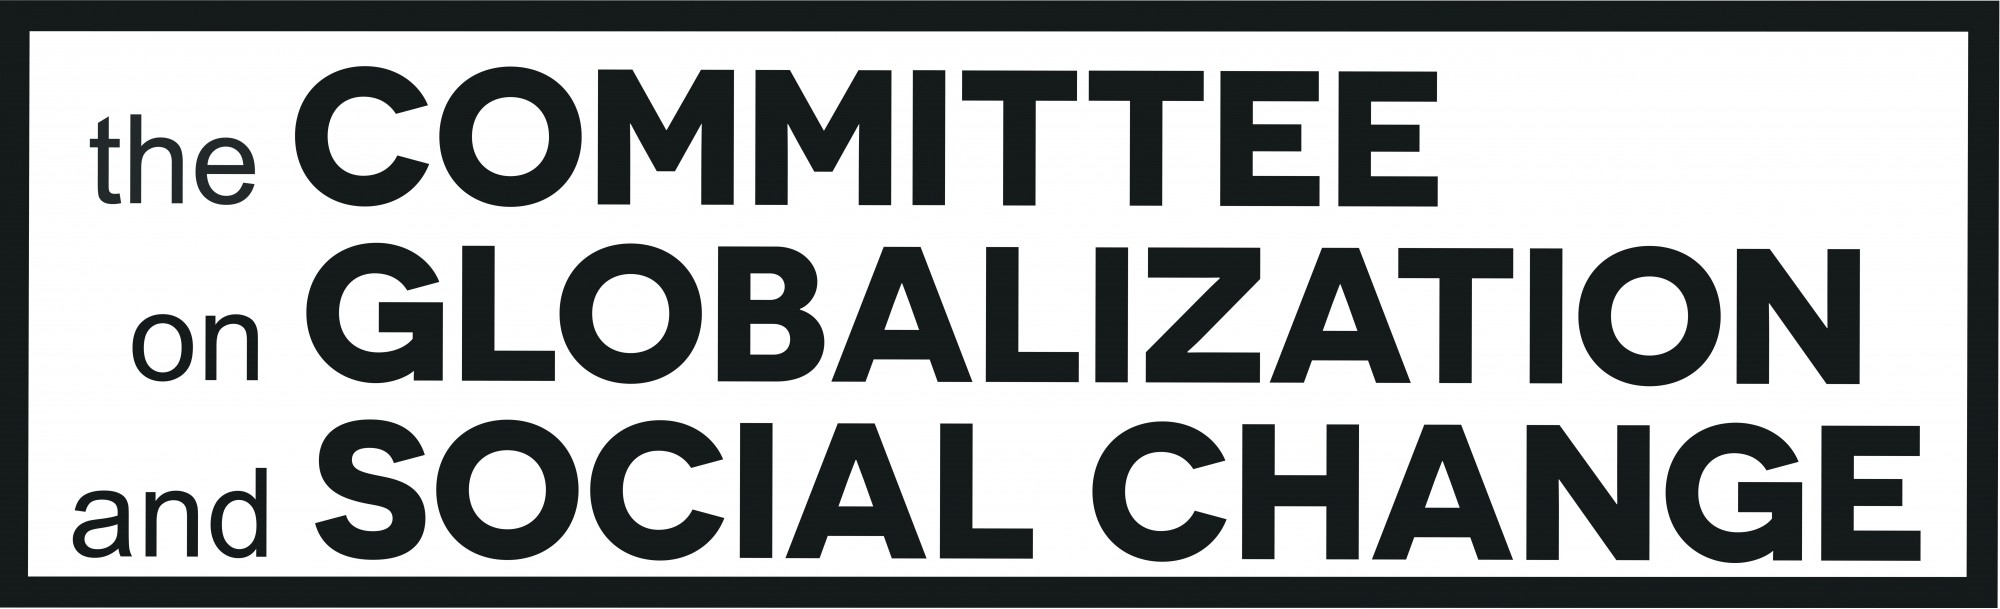 Committee on Globalization and Social Change